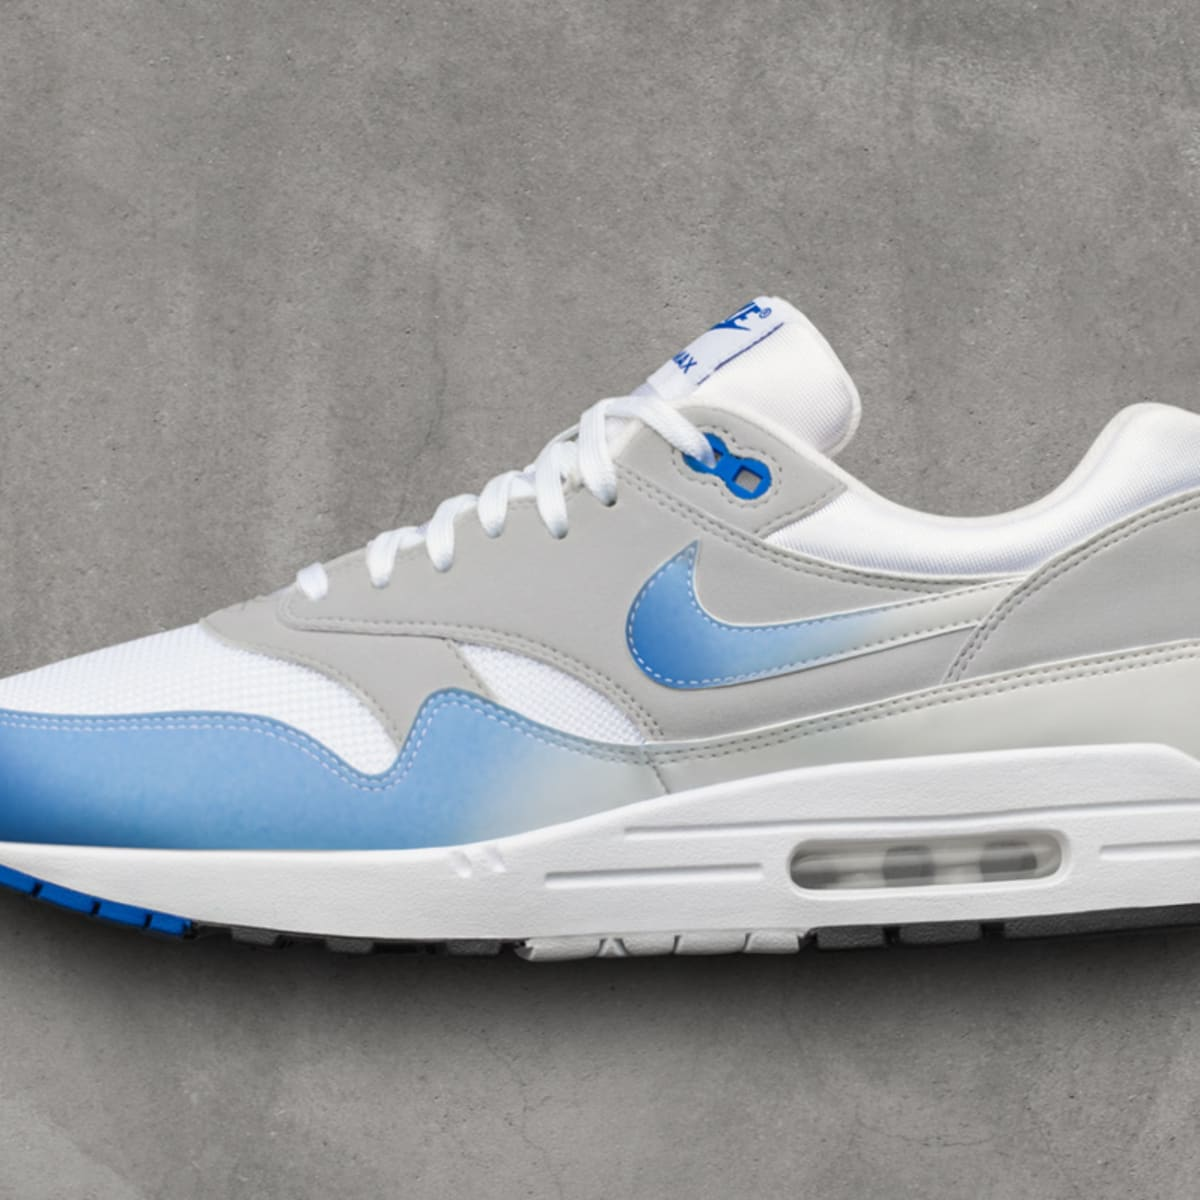 This Nike Air Max 1 Changes Colors When Exposed to Sunlight ...